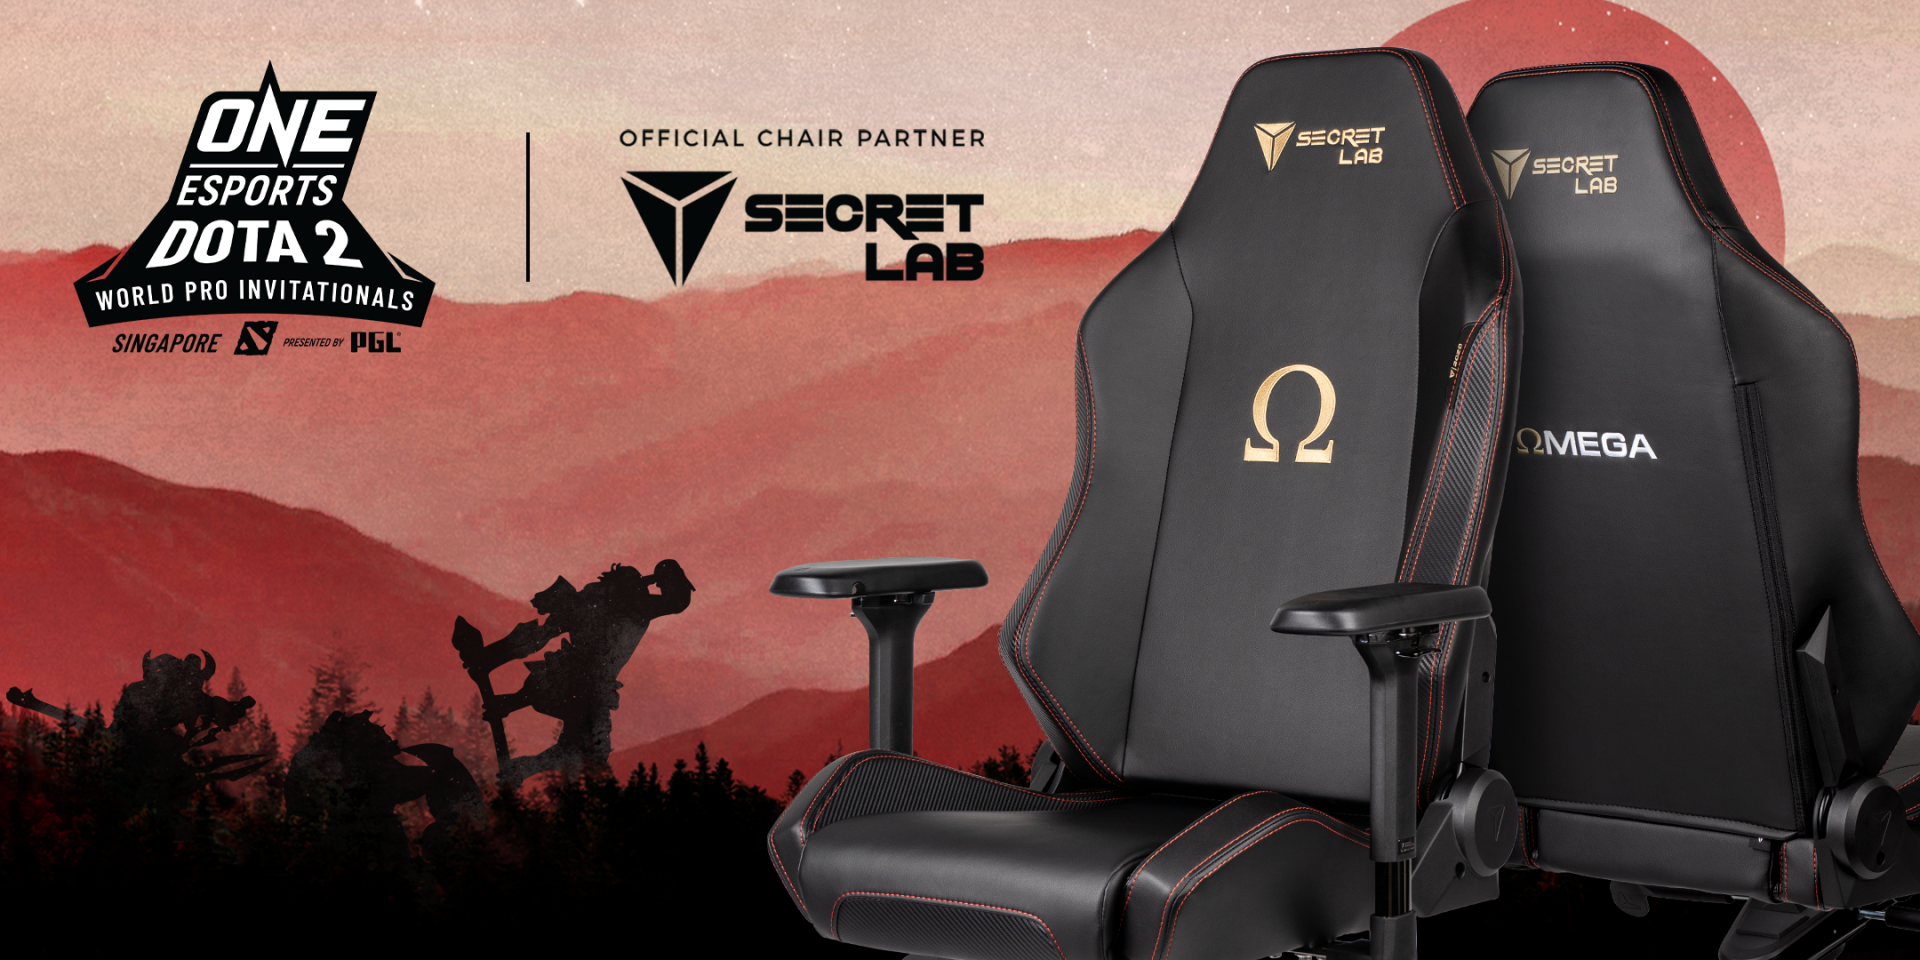 Secretlab partners with ONE Championship's ONE Esports